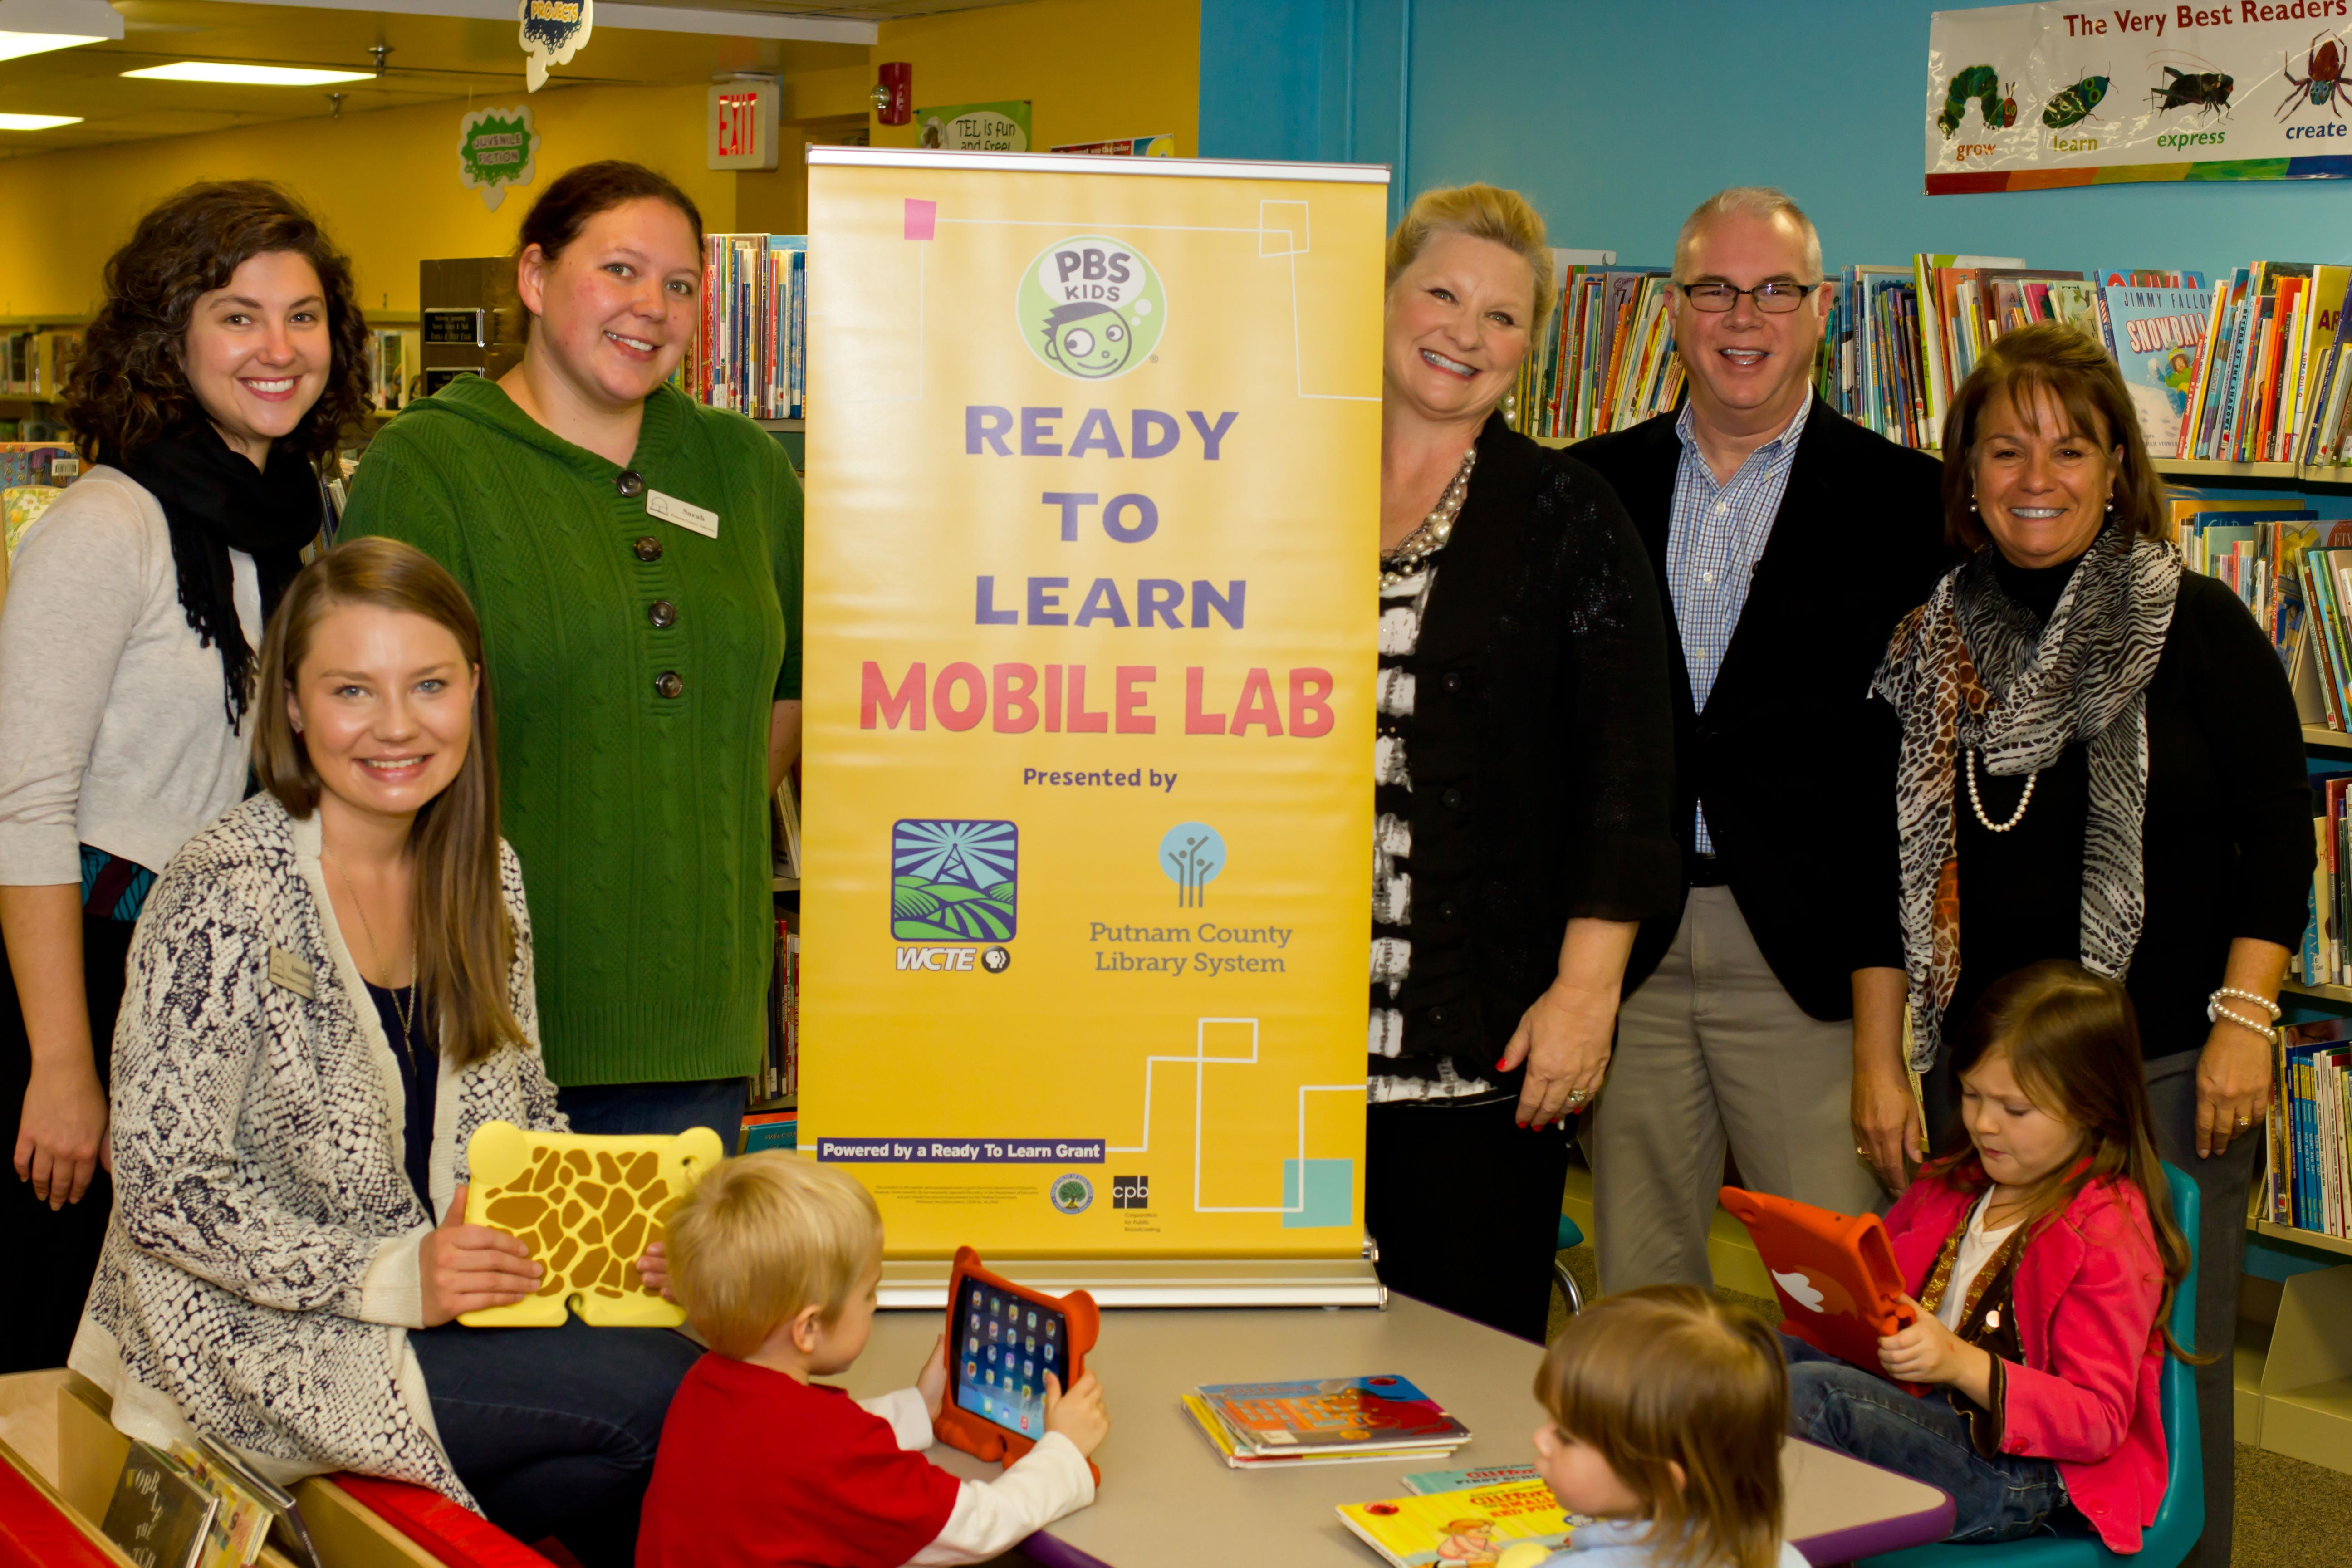 WCTE donates five iPad minis to the Putnam County Library's Ready To Learn Mobile Lab